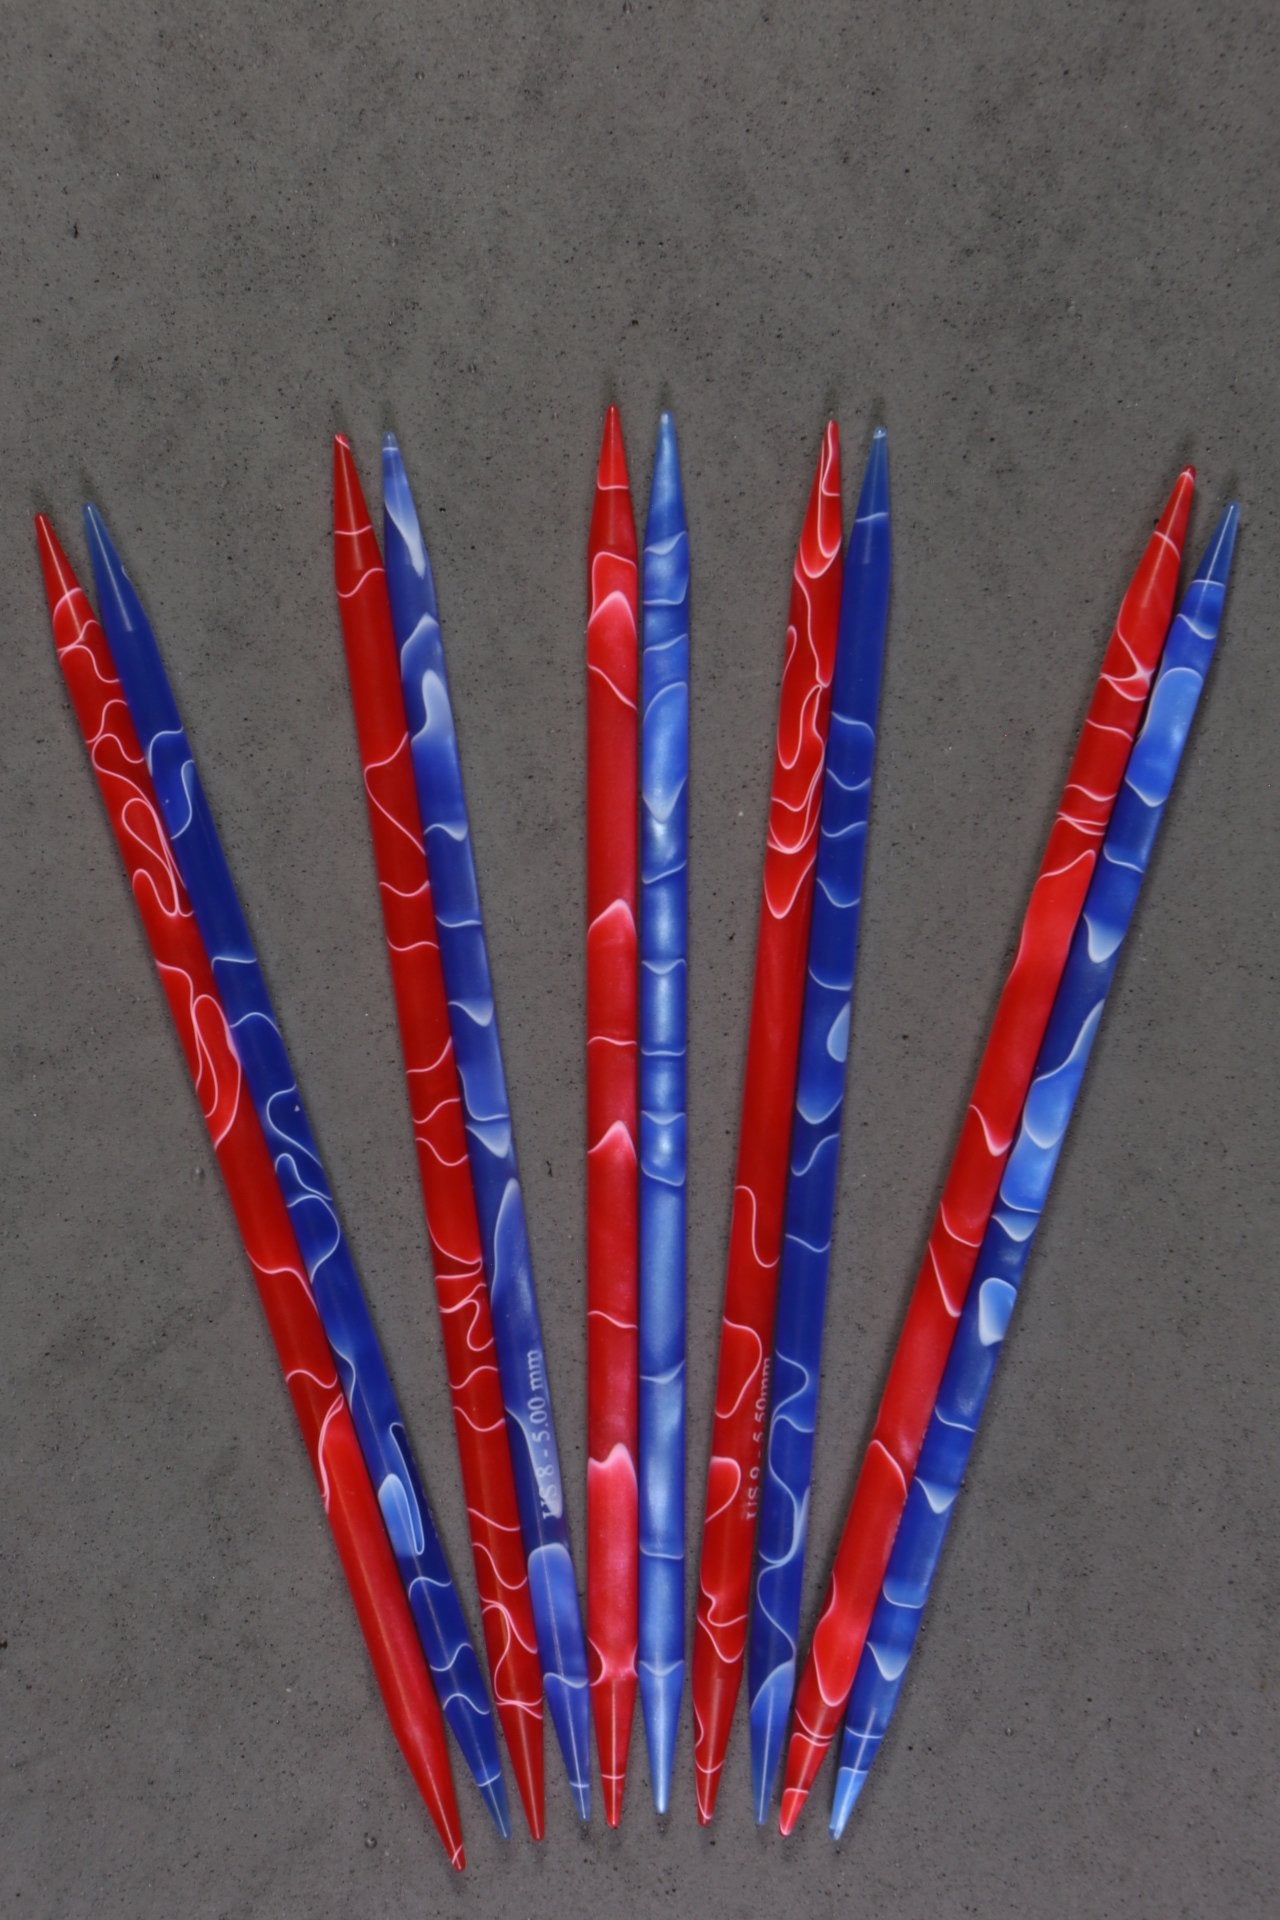 Knitter's Pride Marblz Double Pointed Needles